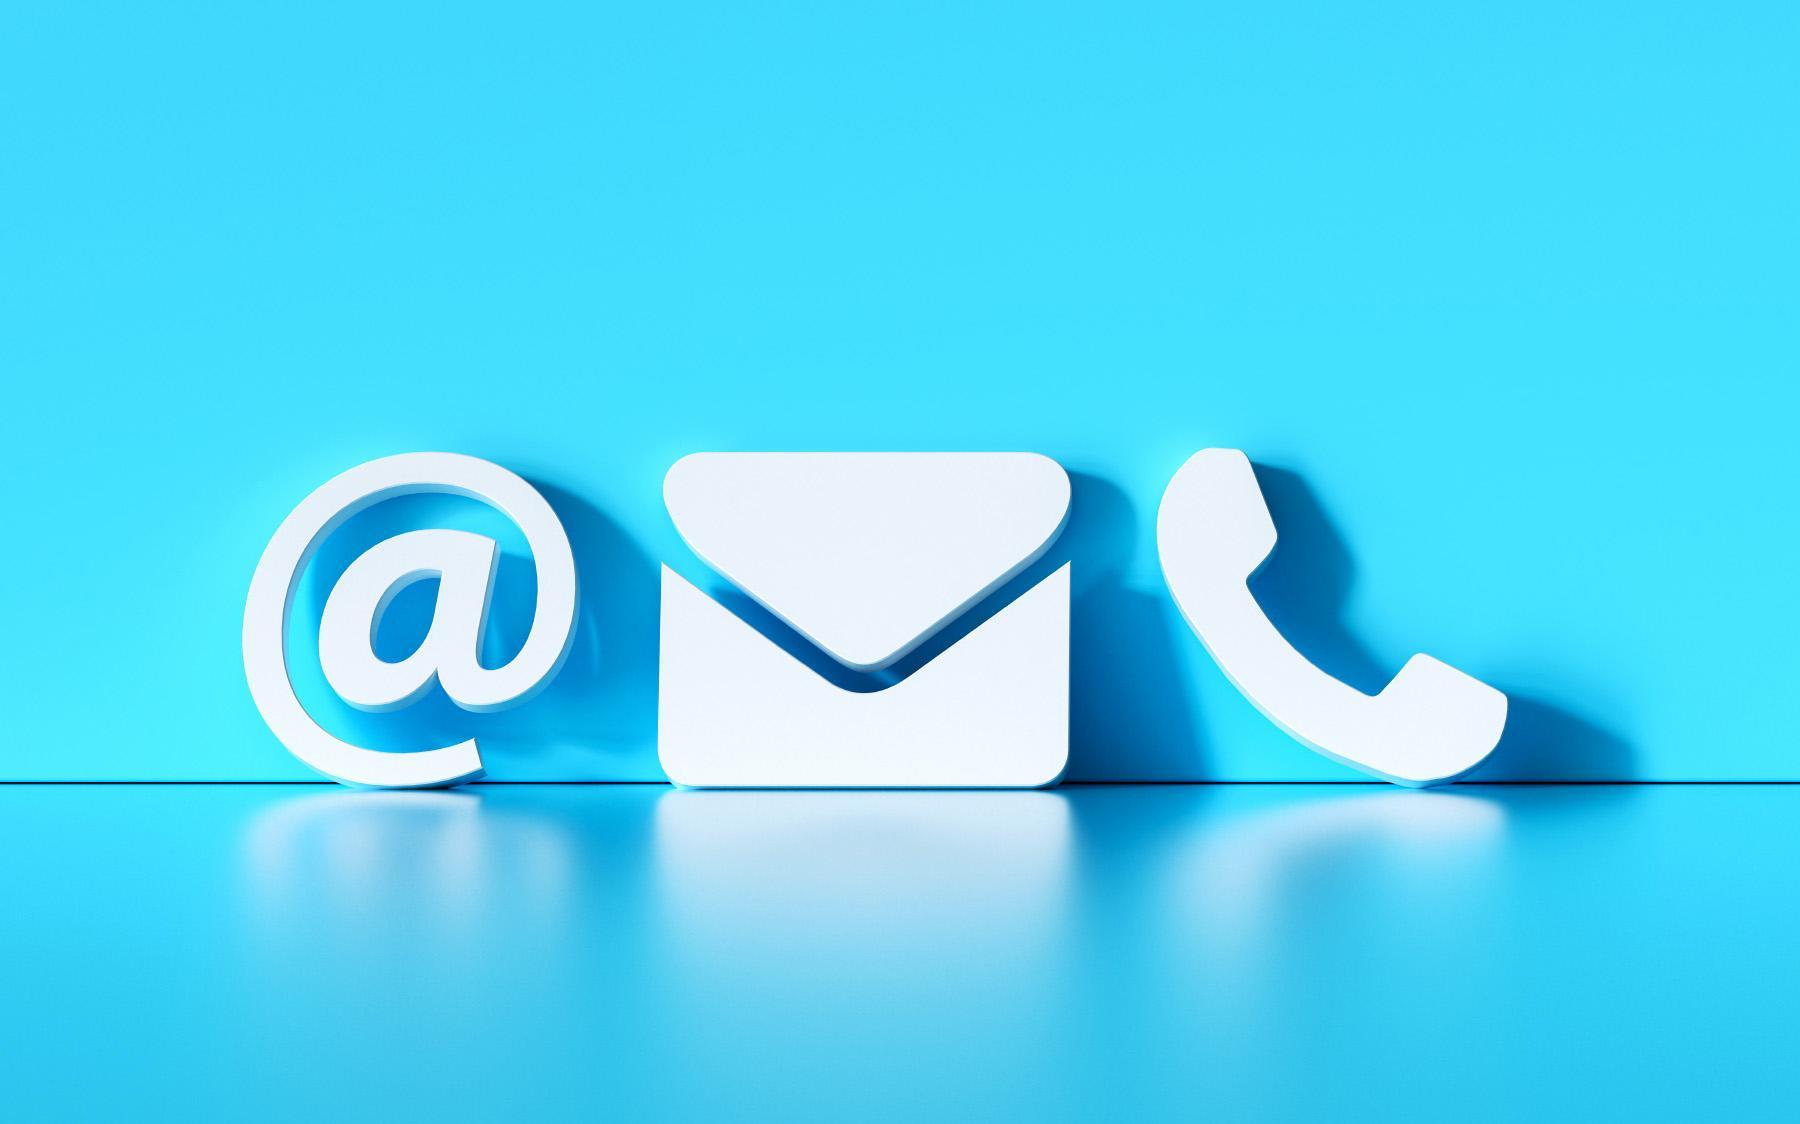 E-mail, phone, and mail icon against a blue backdrop